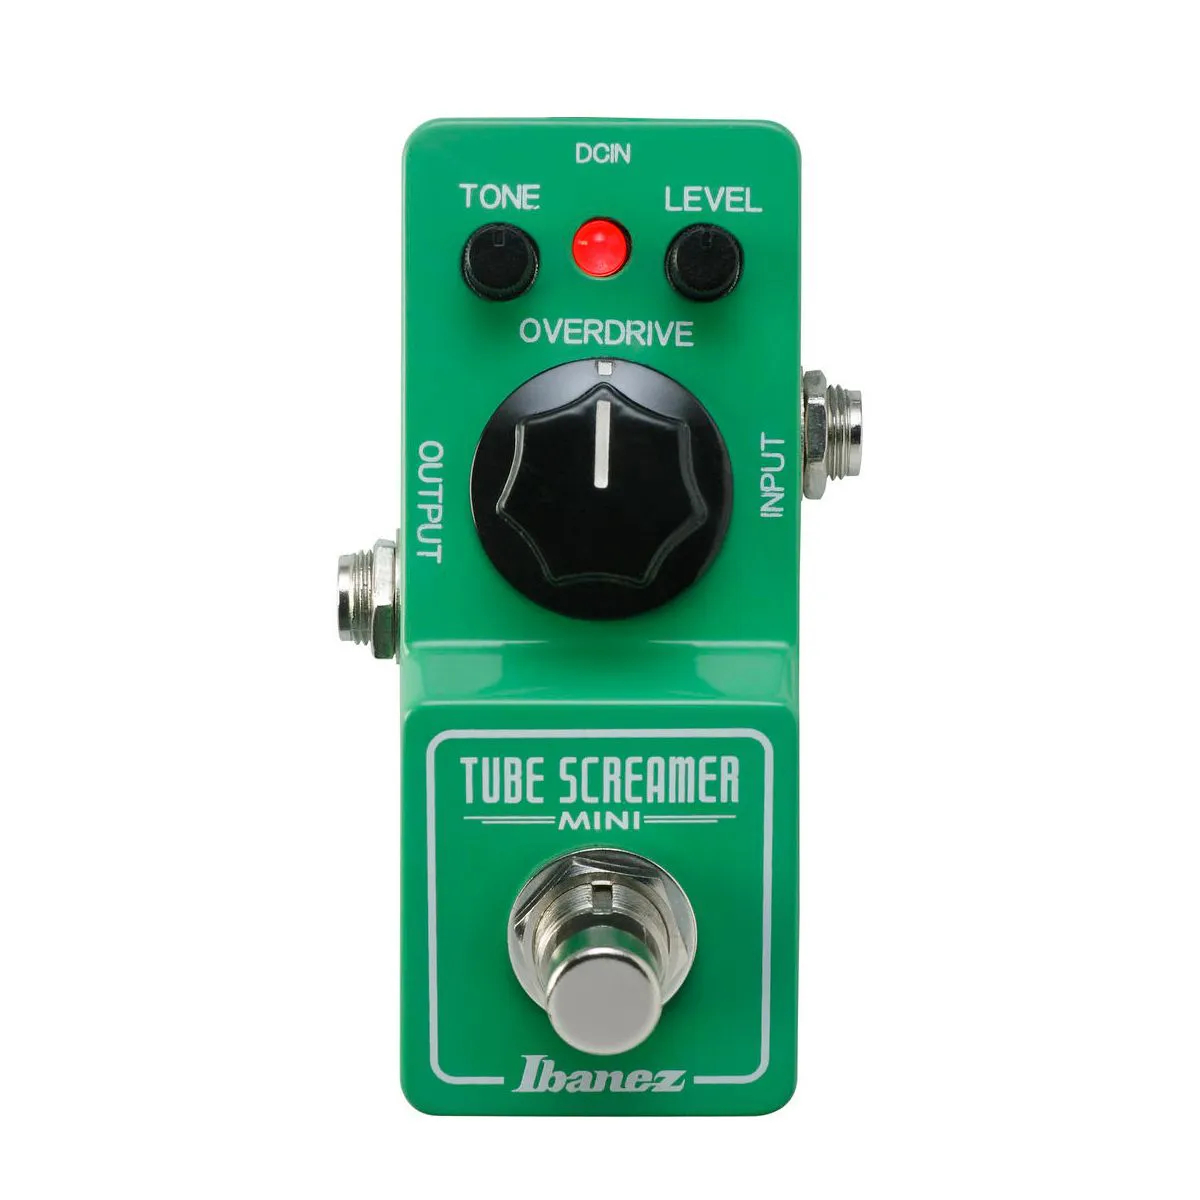 Pedal de Efeito Ibanez Tube Screamer TS Mini para Guitarra